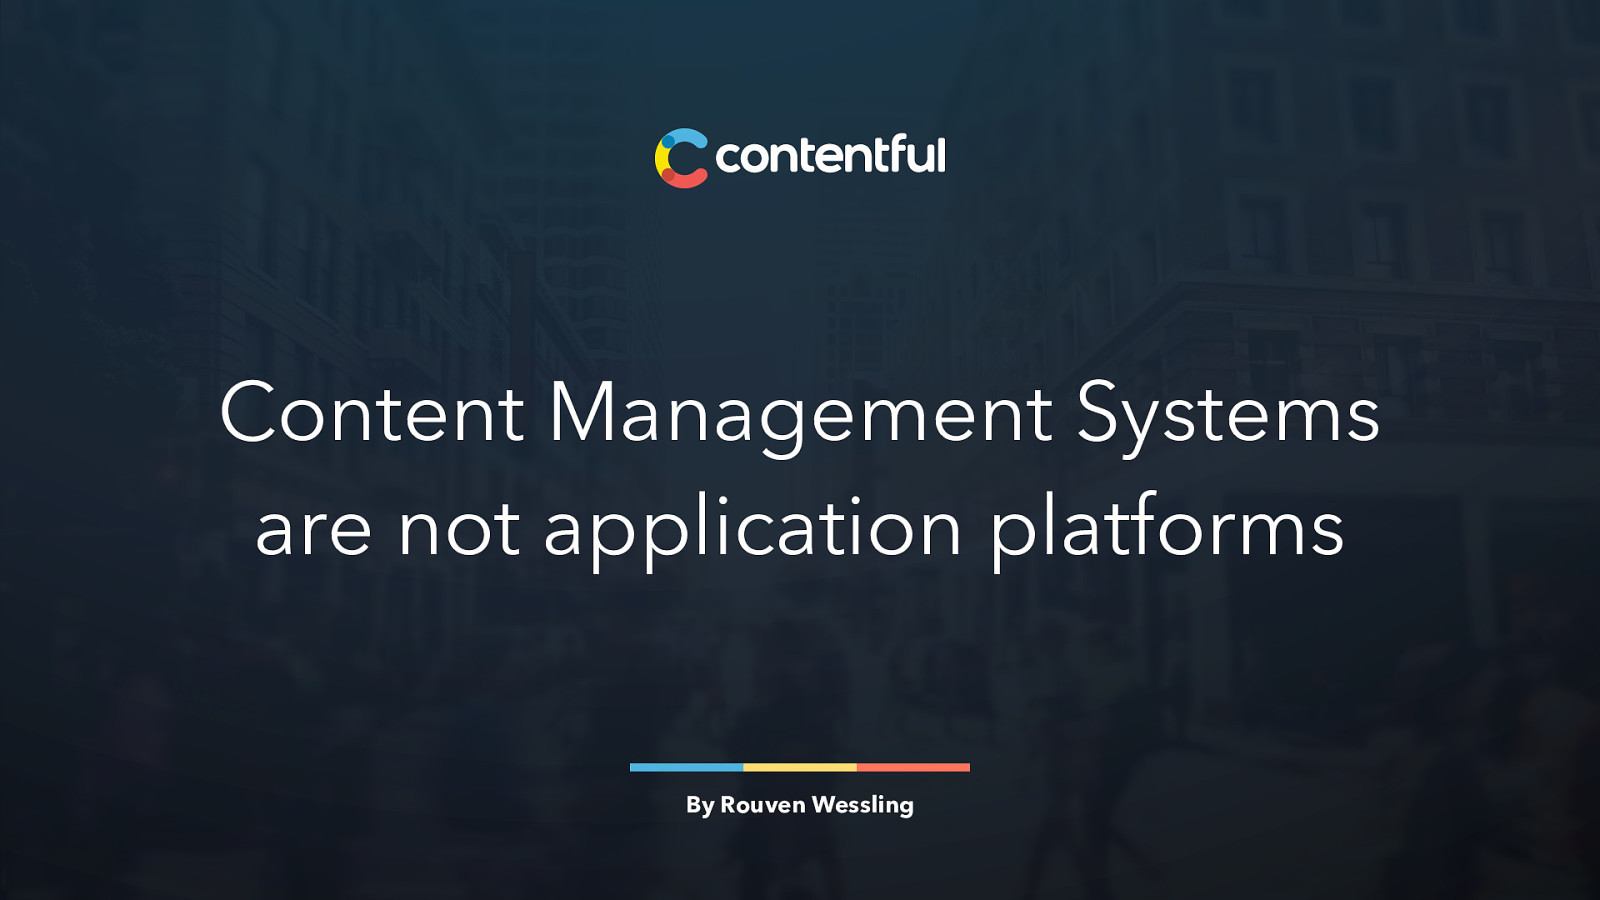 Content Management Systems are not application platforms